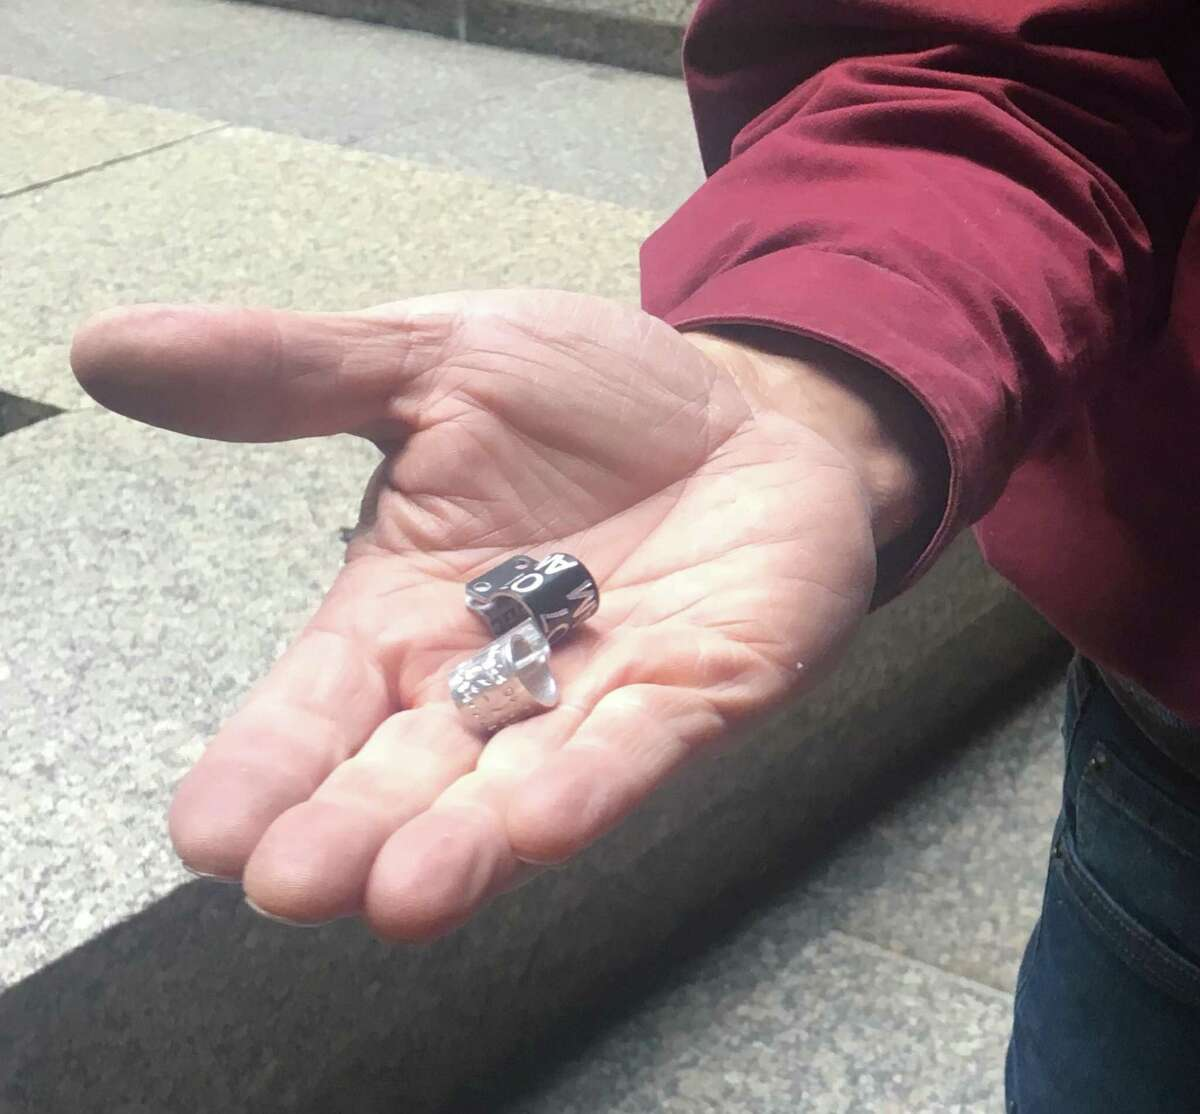 Glenn Stewart, director of the Predatory Bird Research Group at UC Santa Cruz, holds bands he placed on the legs of three peregrine falcons hatched earlier this month atop the PG&E building, 77 Beale St., in San Francisco.